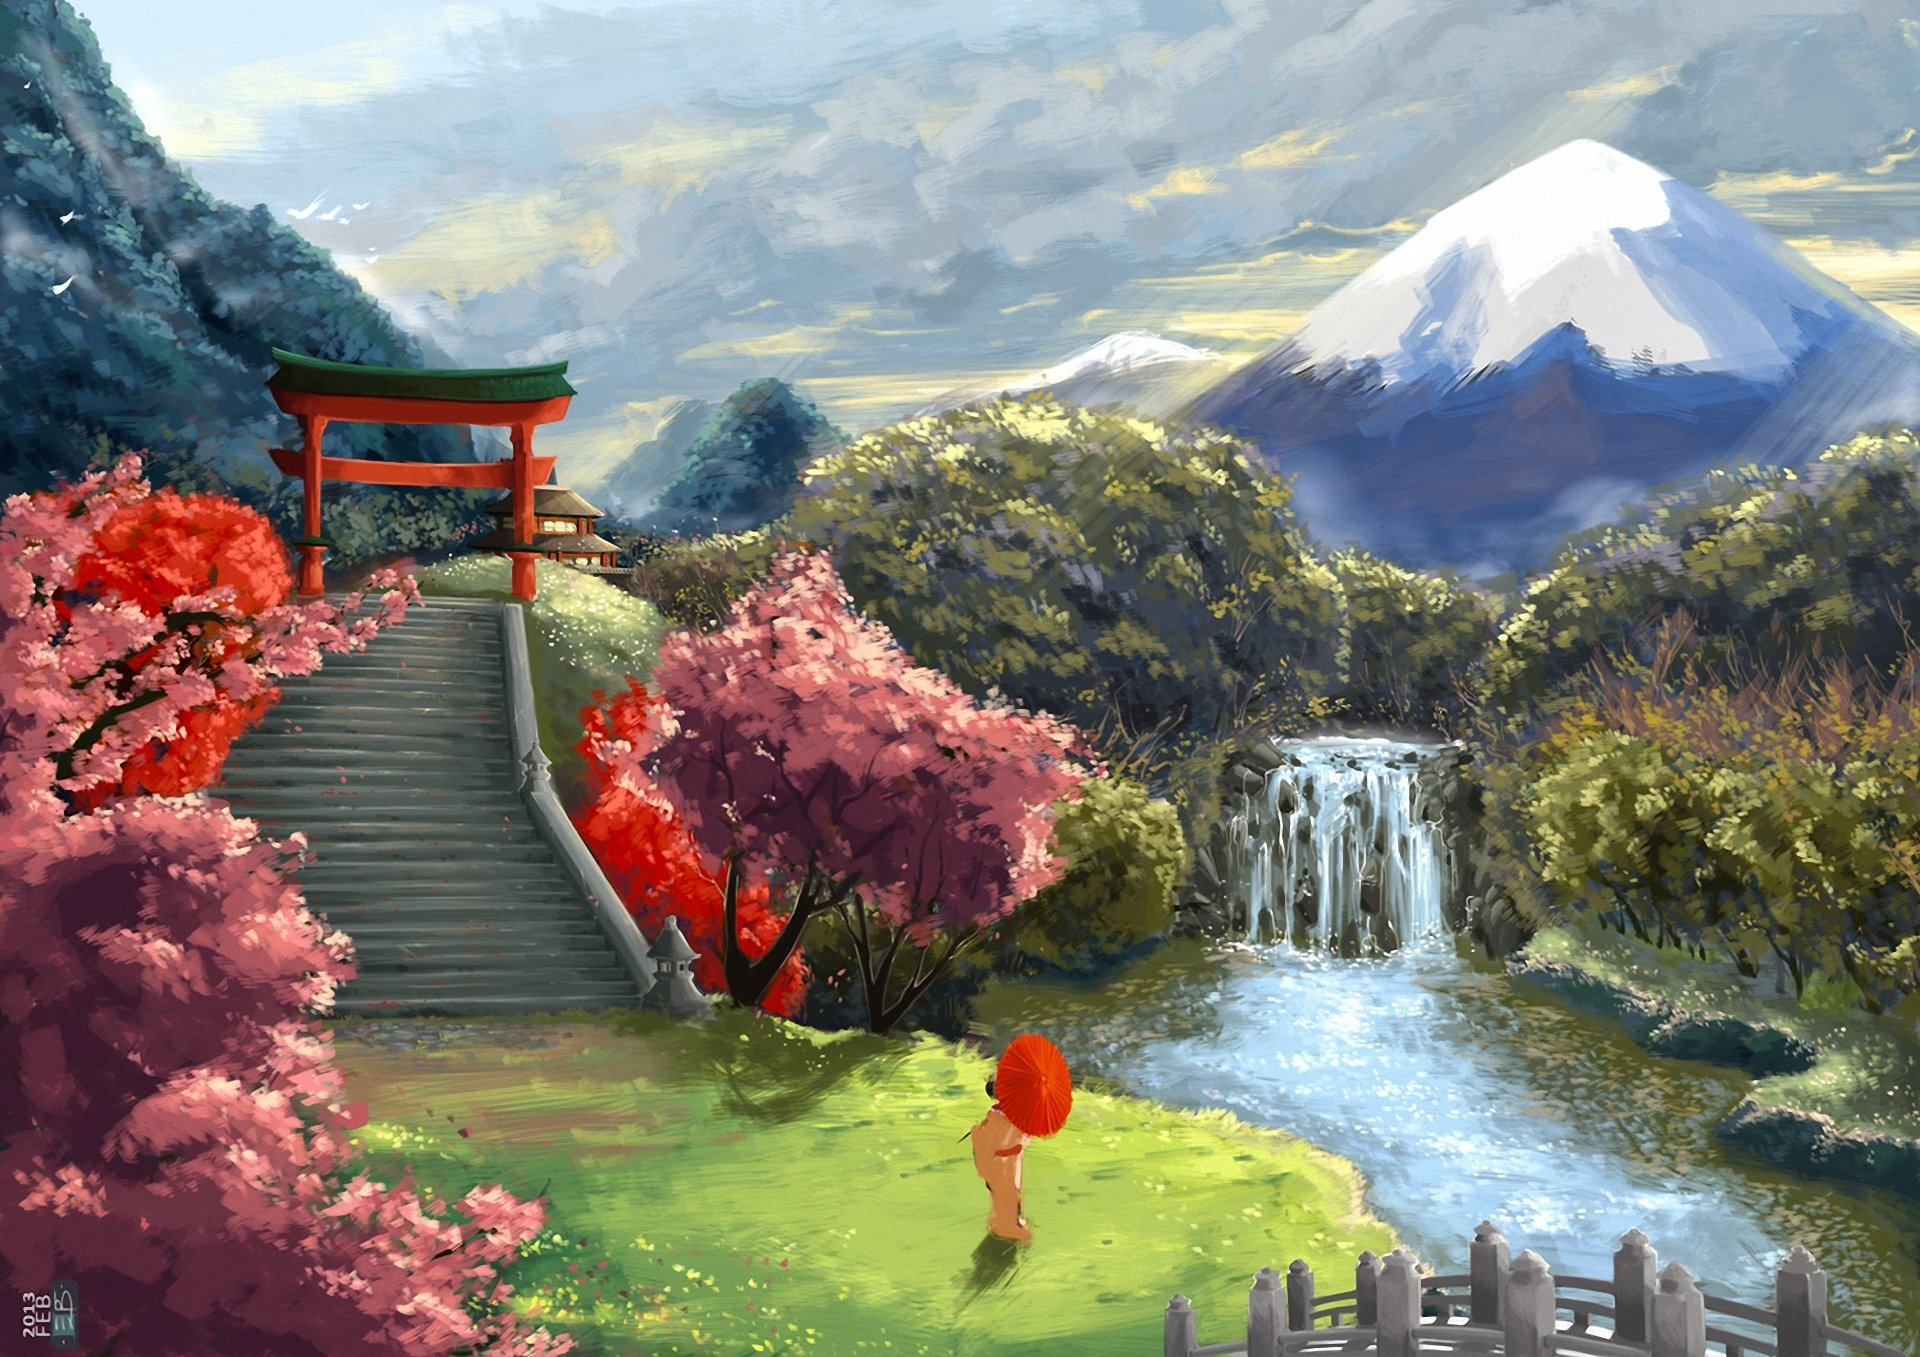 art landscape asia geisha umbrella sakura stairs gate 1920x1357